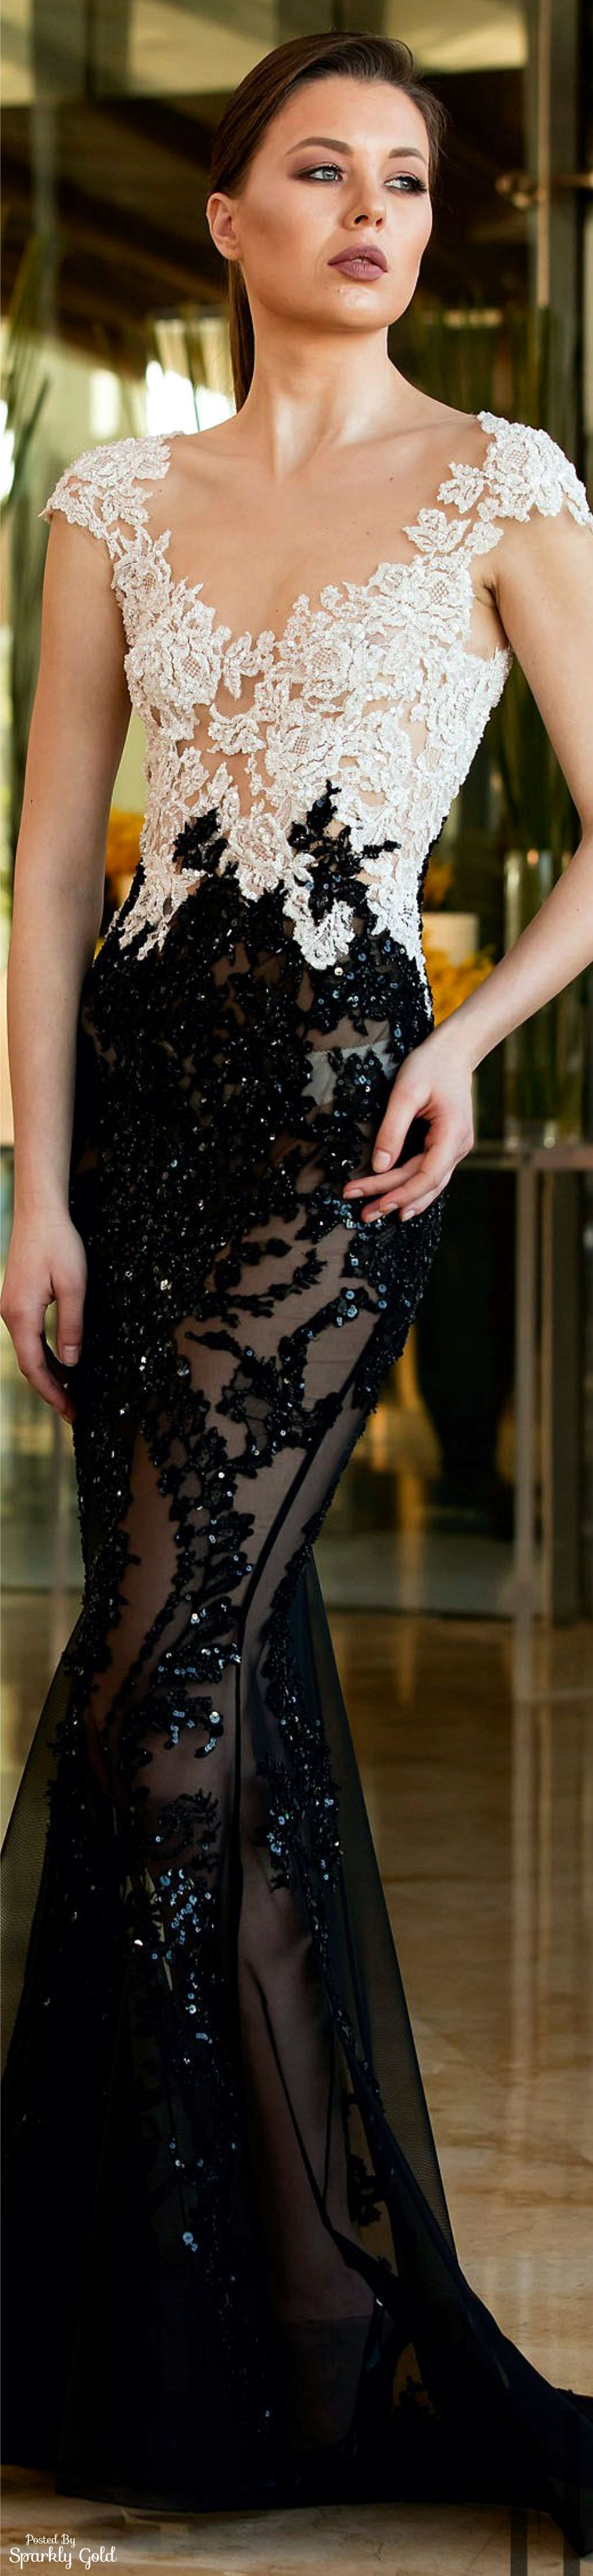 Toufic Hatab Spring 2016 Couture